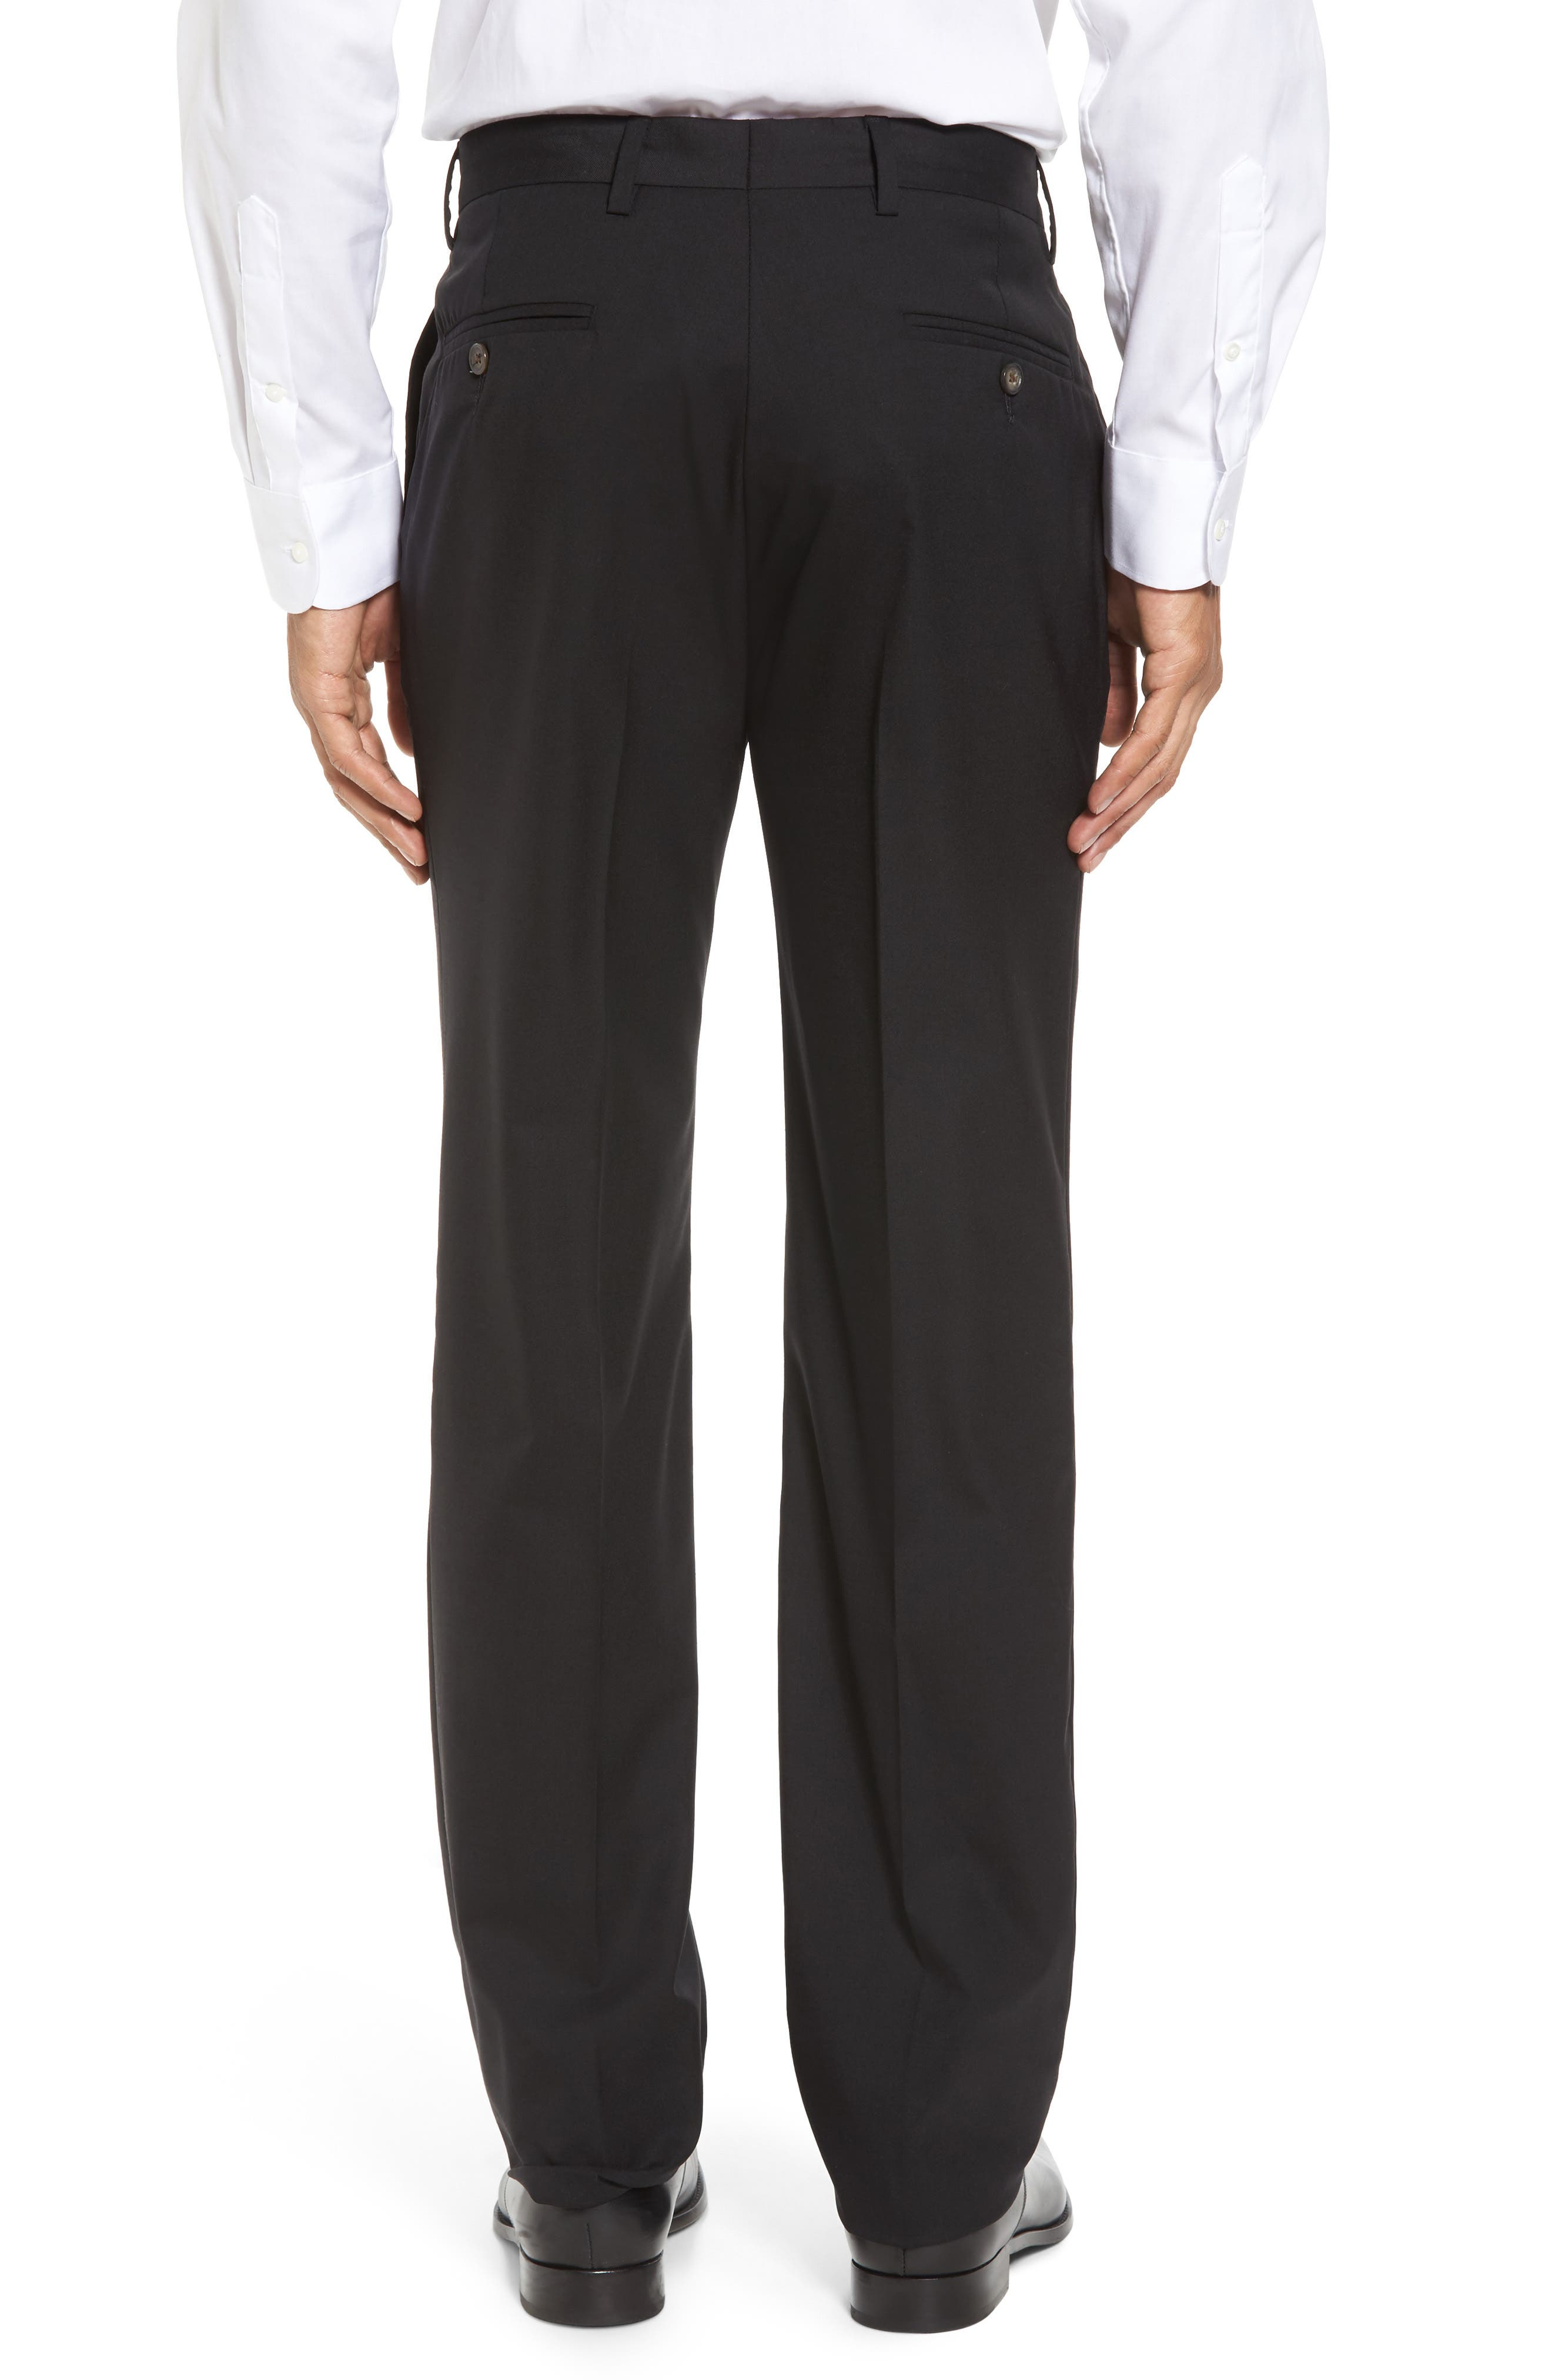 BERLE,                             Flat Front Stretch Solid Wool Trousers,                             Alternate thumbnail 3, color,                             001